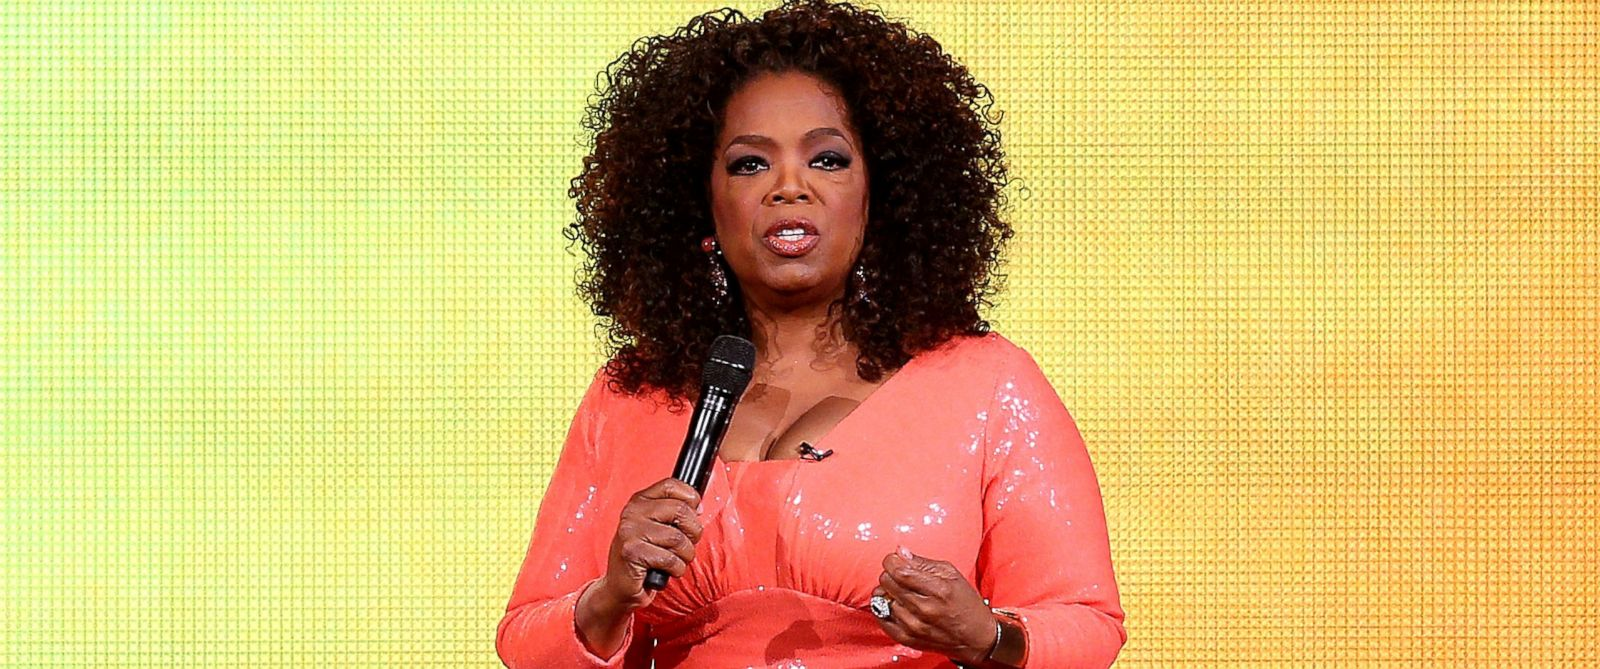 PHOTO: Oprah Winfrey talks on stage during her An Evening With Oprah tour, Dec. 2, 2015, in Melbourne, Australia.